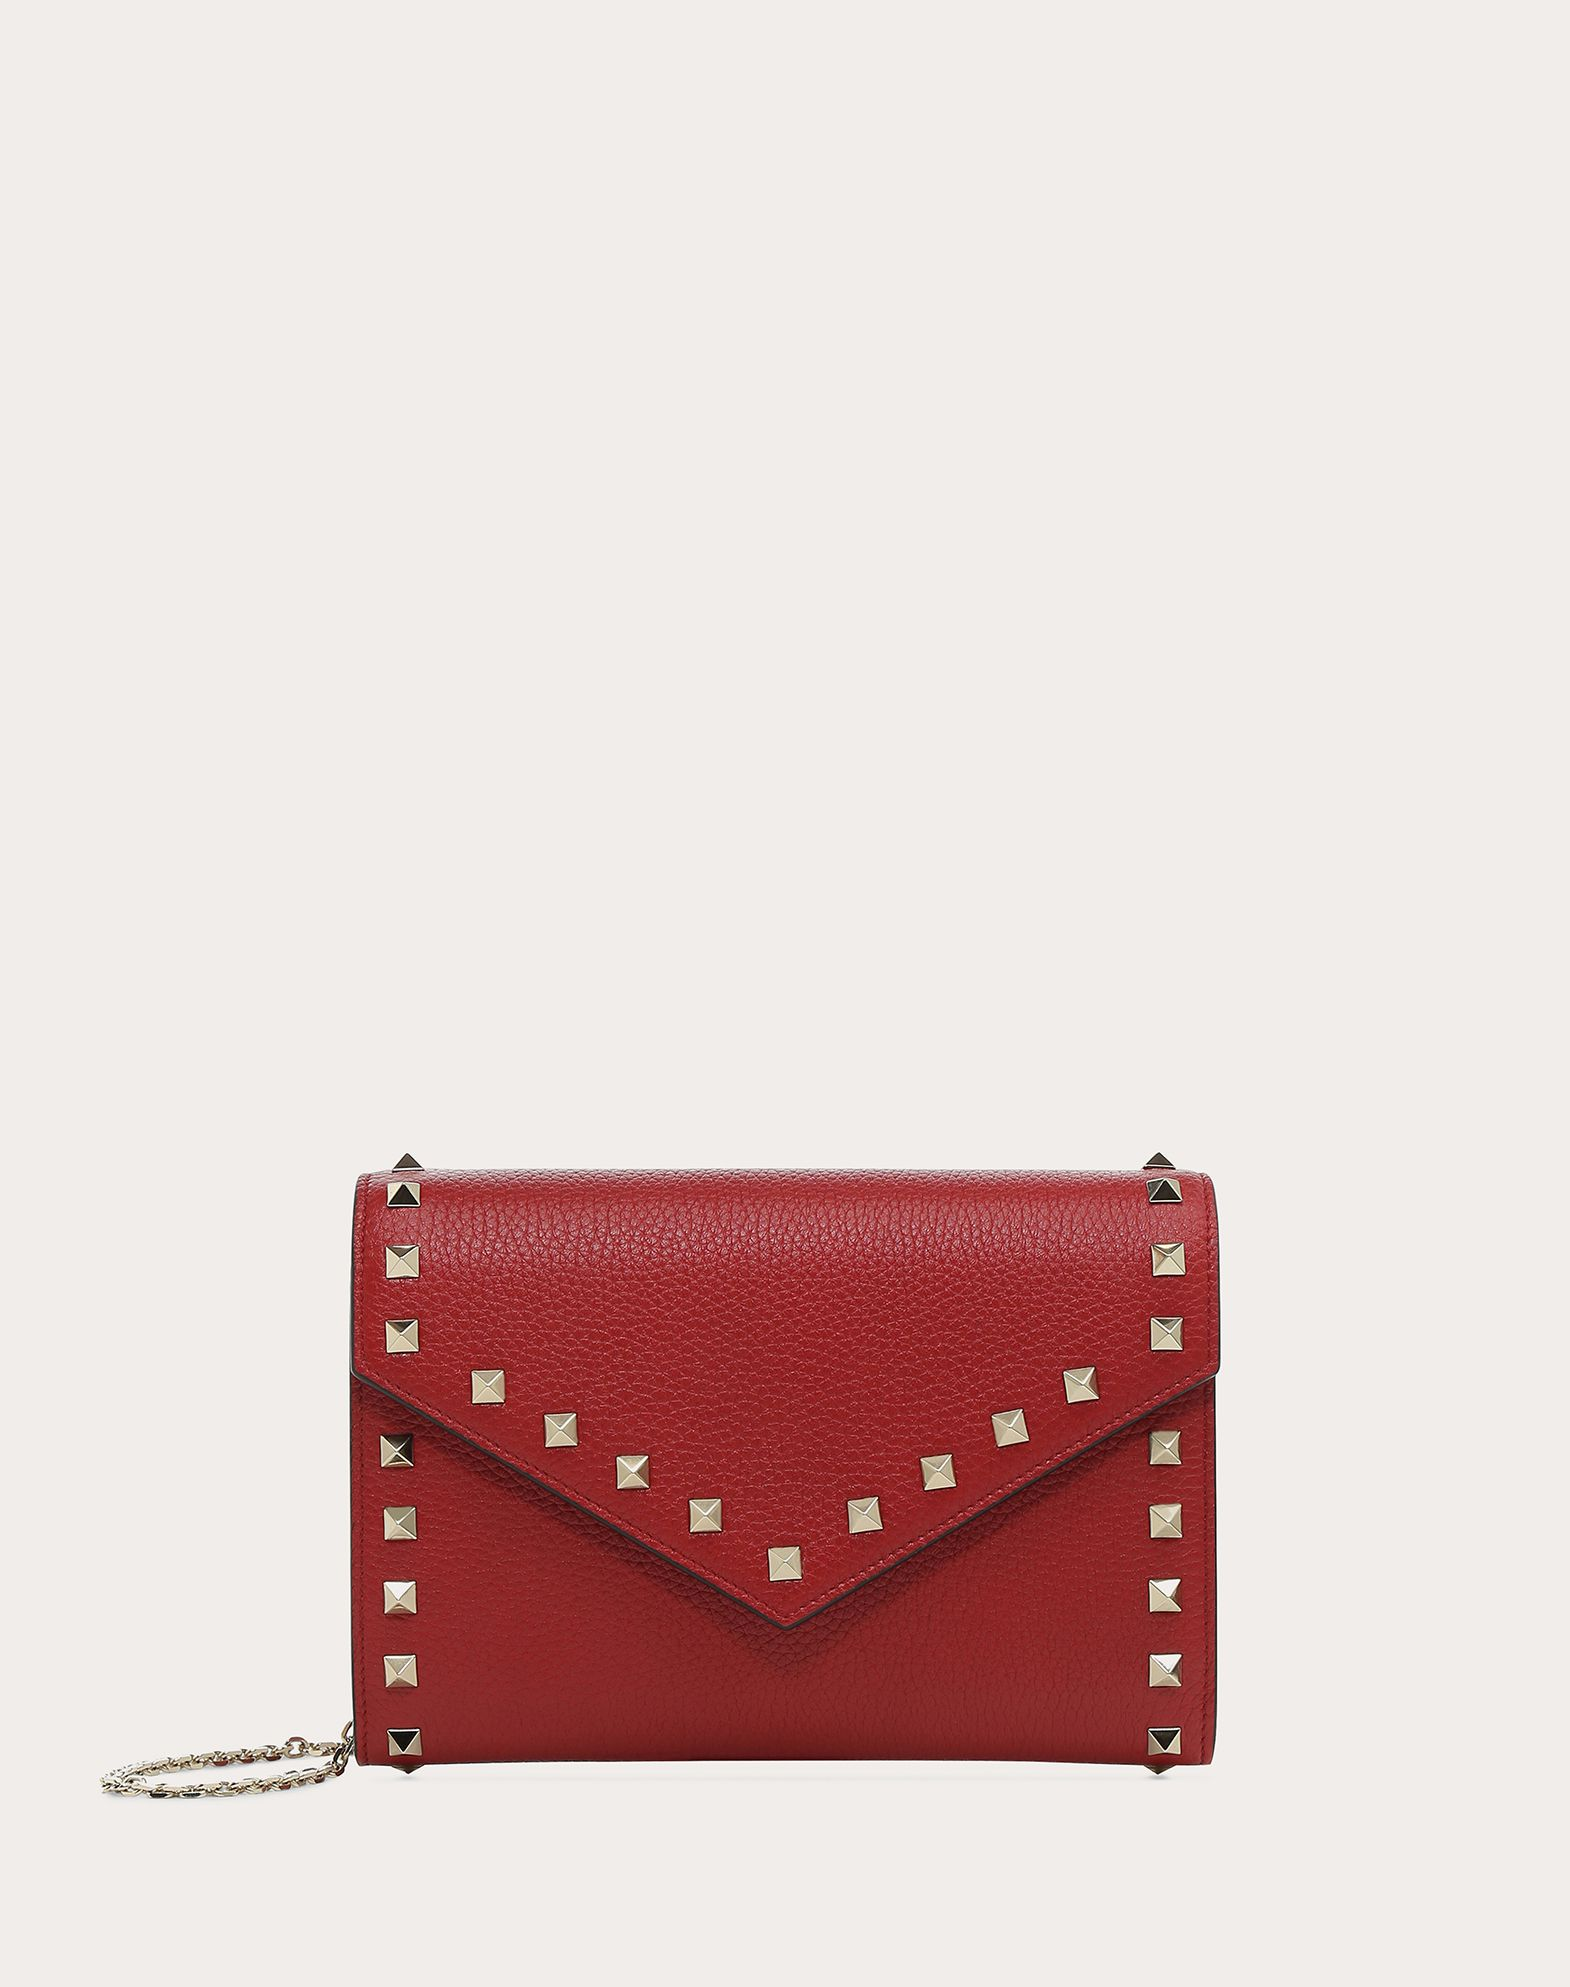 VALENTINO GARAVANI Rockstud Wallet with chain CHAIN WALLETS D f